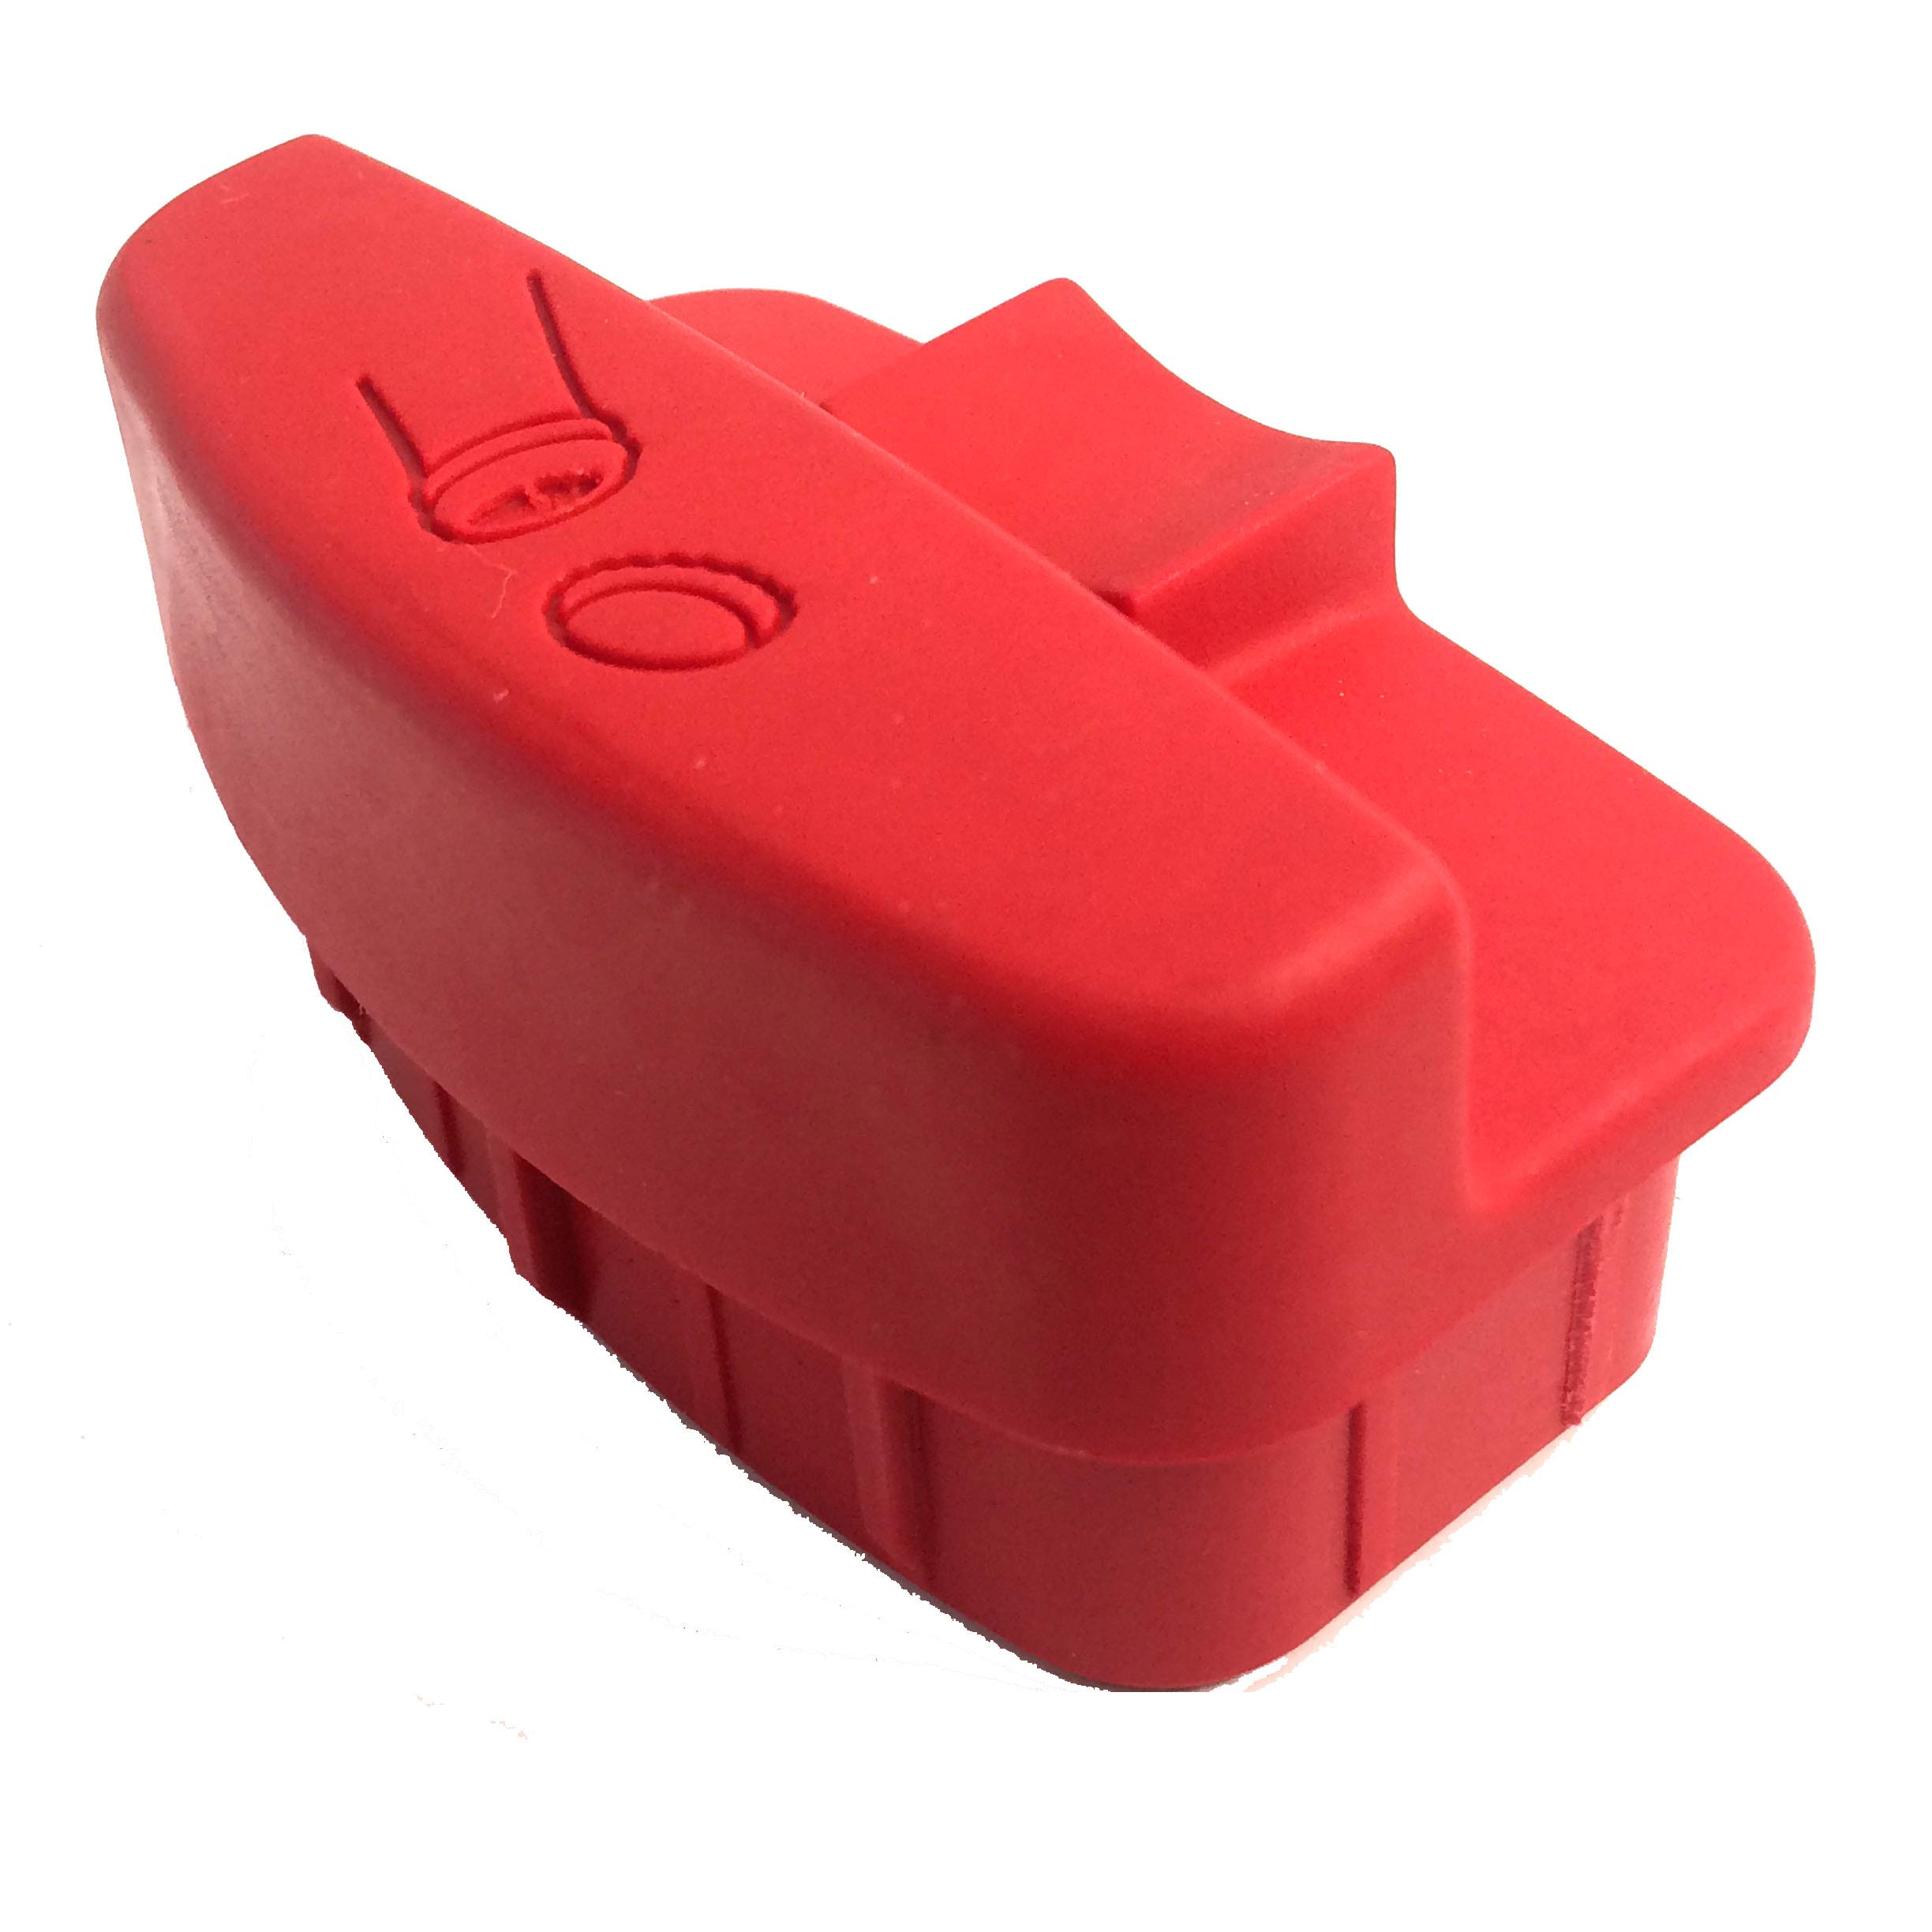 Yakima Replacement Holdup Red End Cap - 8880227